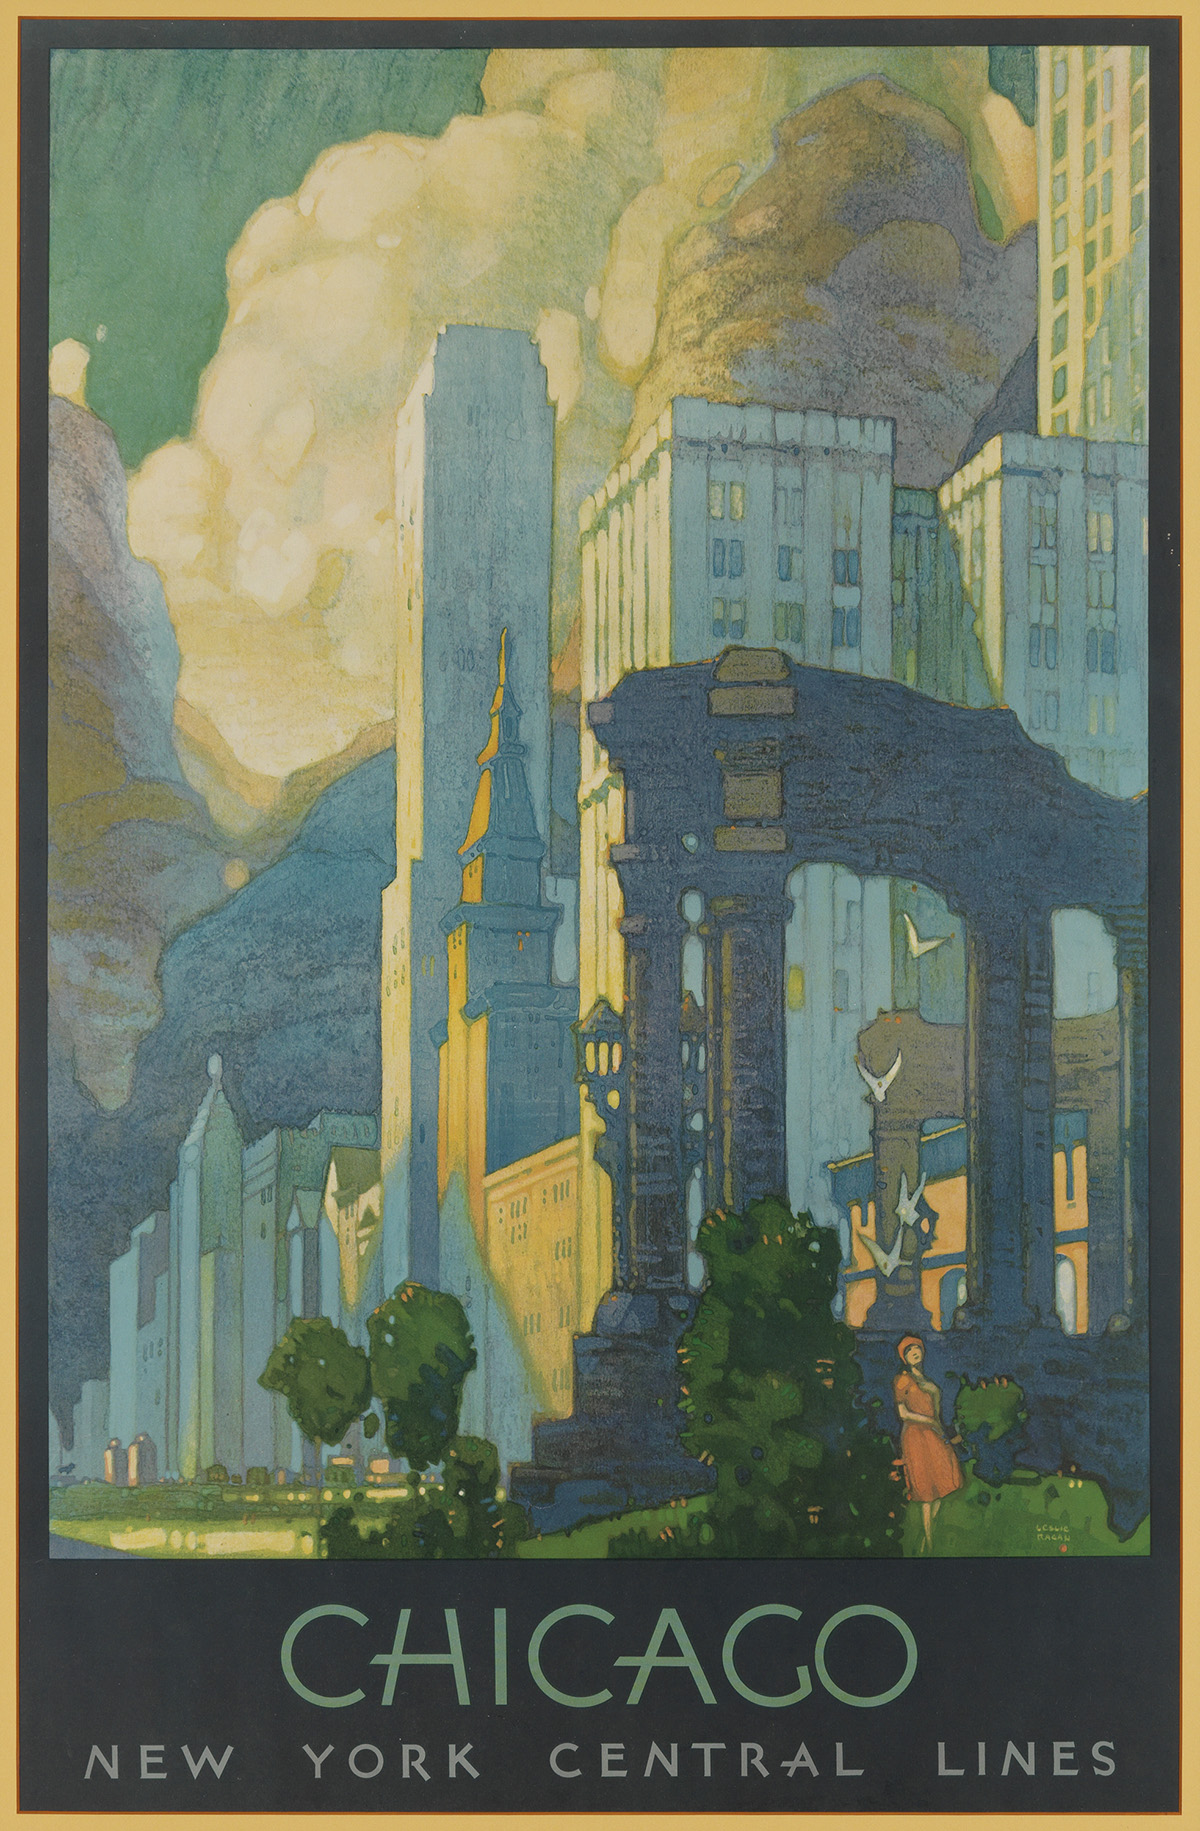 LESLIE RAGAN (1897-1972). CHICAGO / NEW YORK CENTRAL LINES. 1929. 39x25 inches, 99x64 cm. [Latham Litho. & Ptg. Co., Long Island City.]